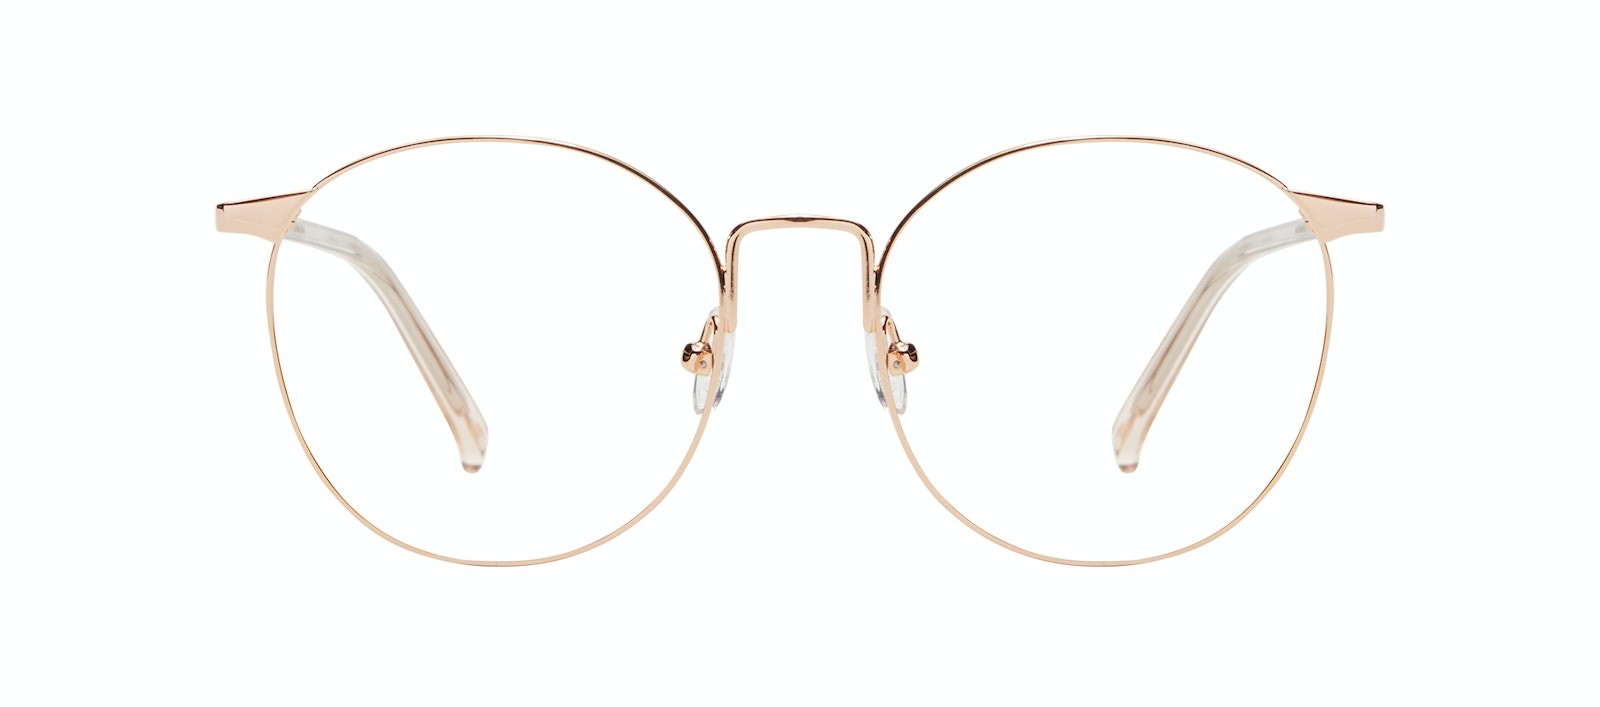 Affordable Fashion Glasses Round Eyeglasses Women Romy Petite Aurore Front